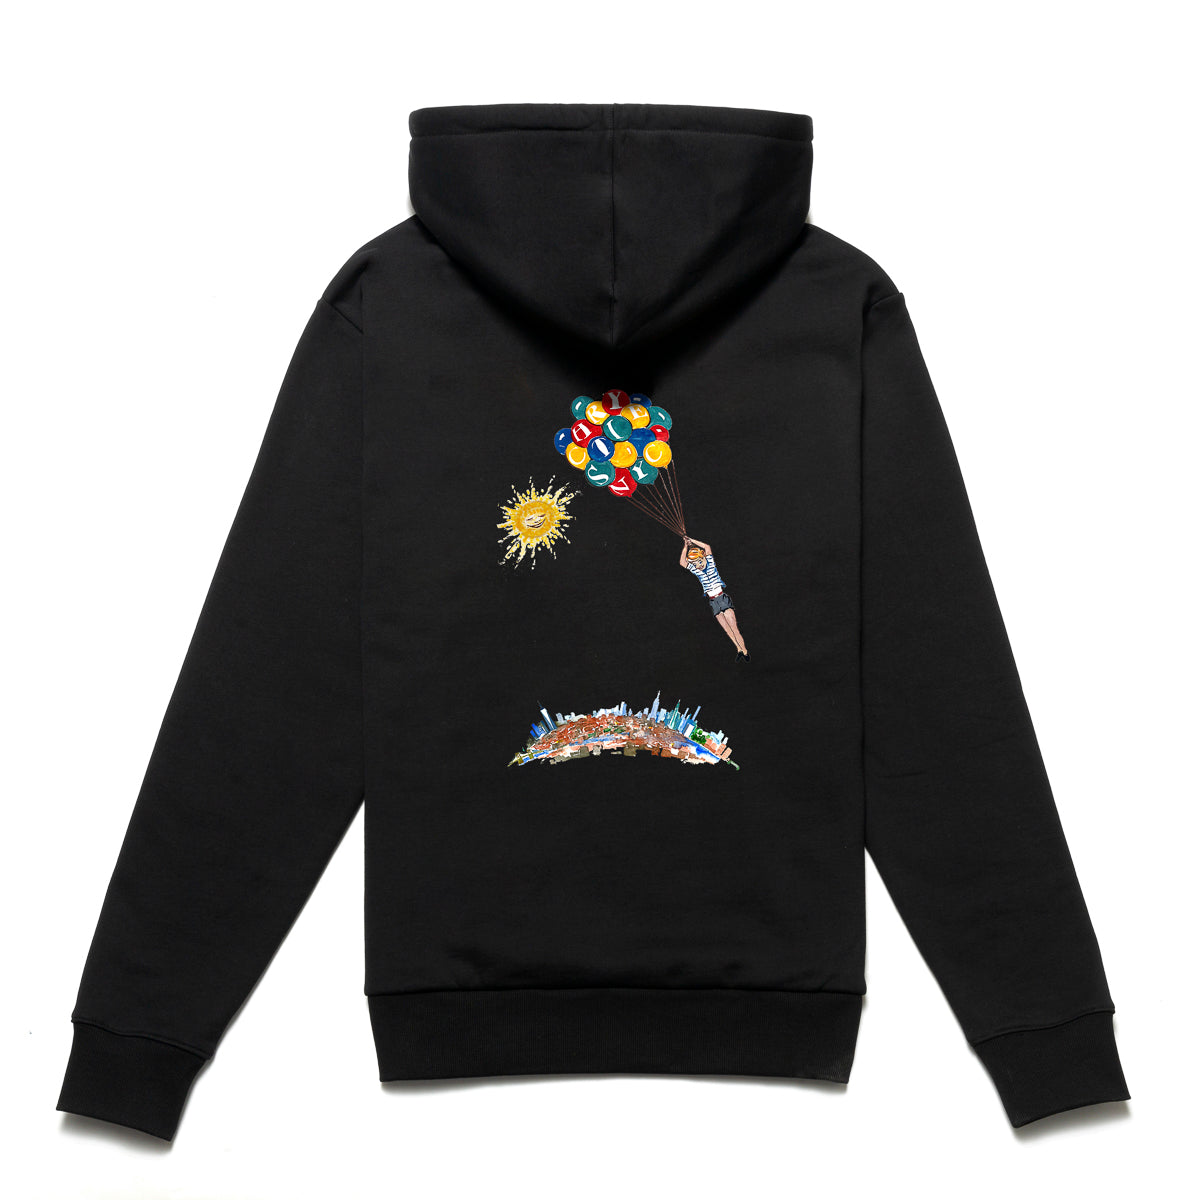 Load image into Gallery viewer, NYC Balloon boy hoodie_Black